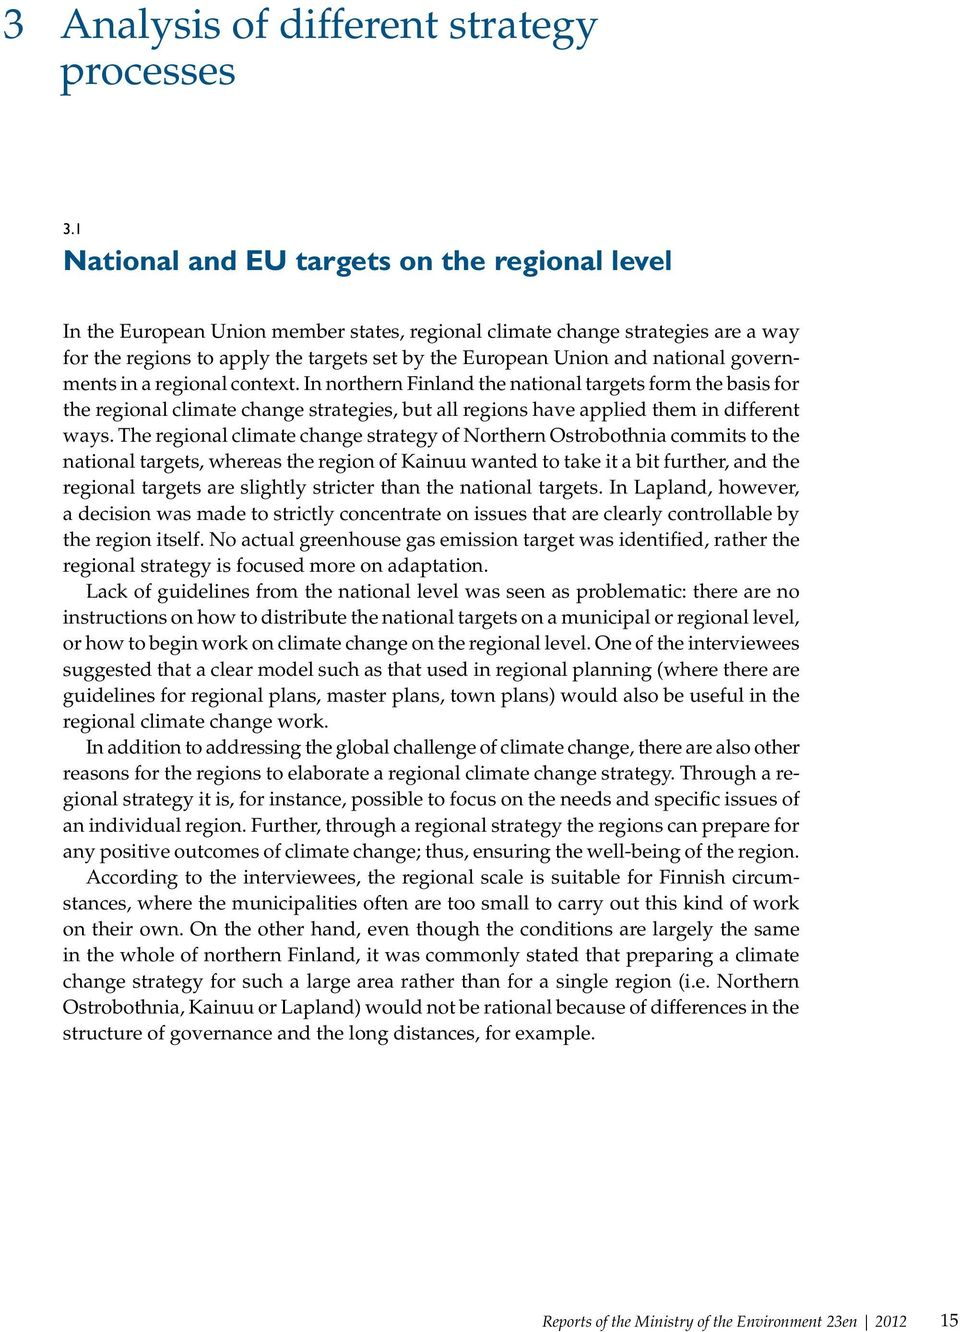 national governments in a regional context. In northern Finland the national targets form the basis for the regional climate change strategies, but all regions have applied them in different ways.